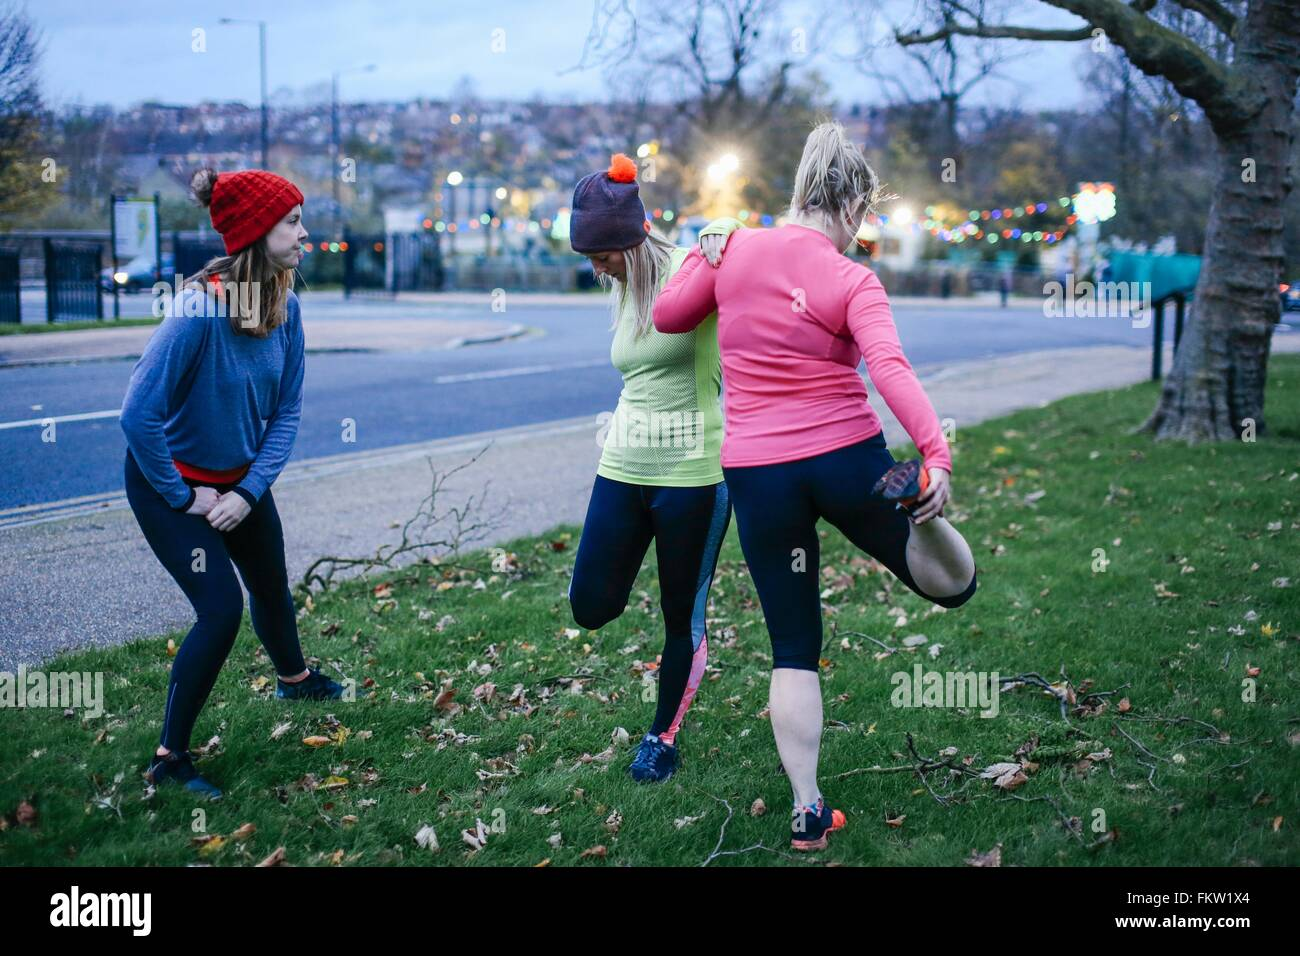 Female runners warming up on city verge at dusk - Stock Image